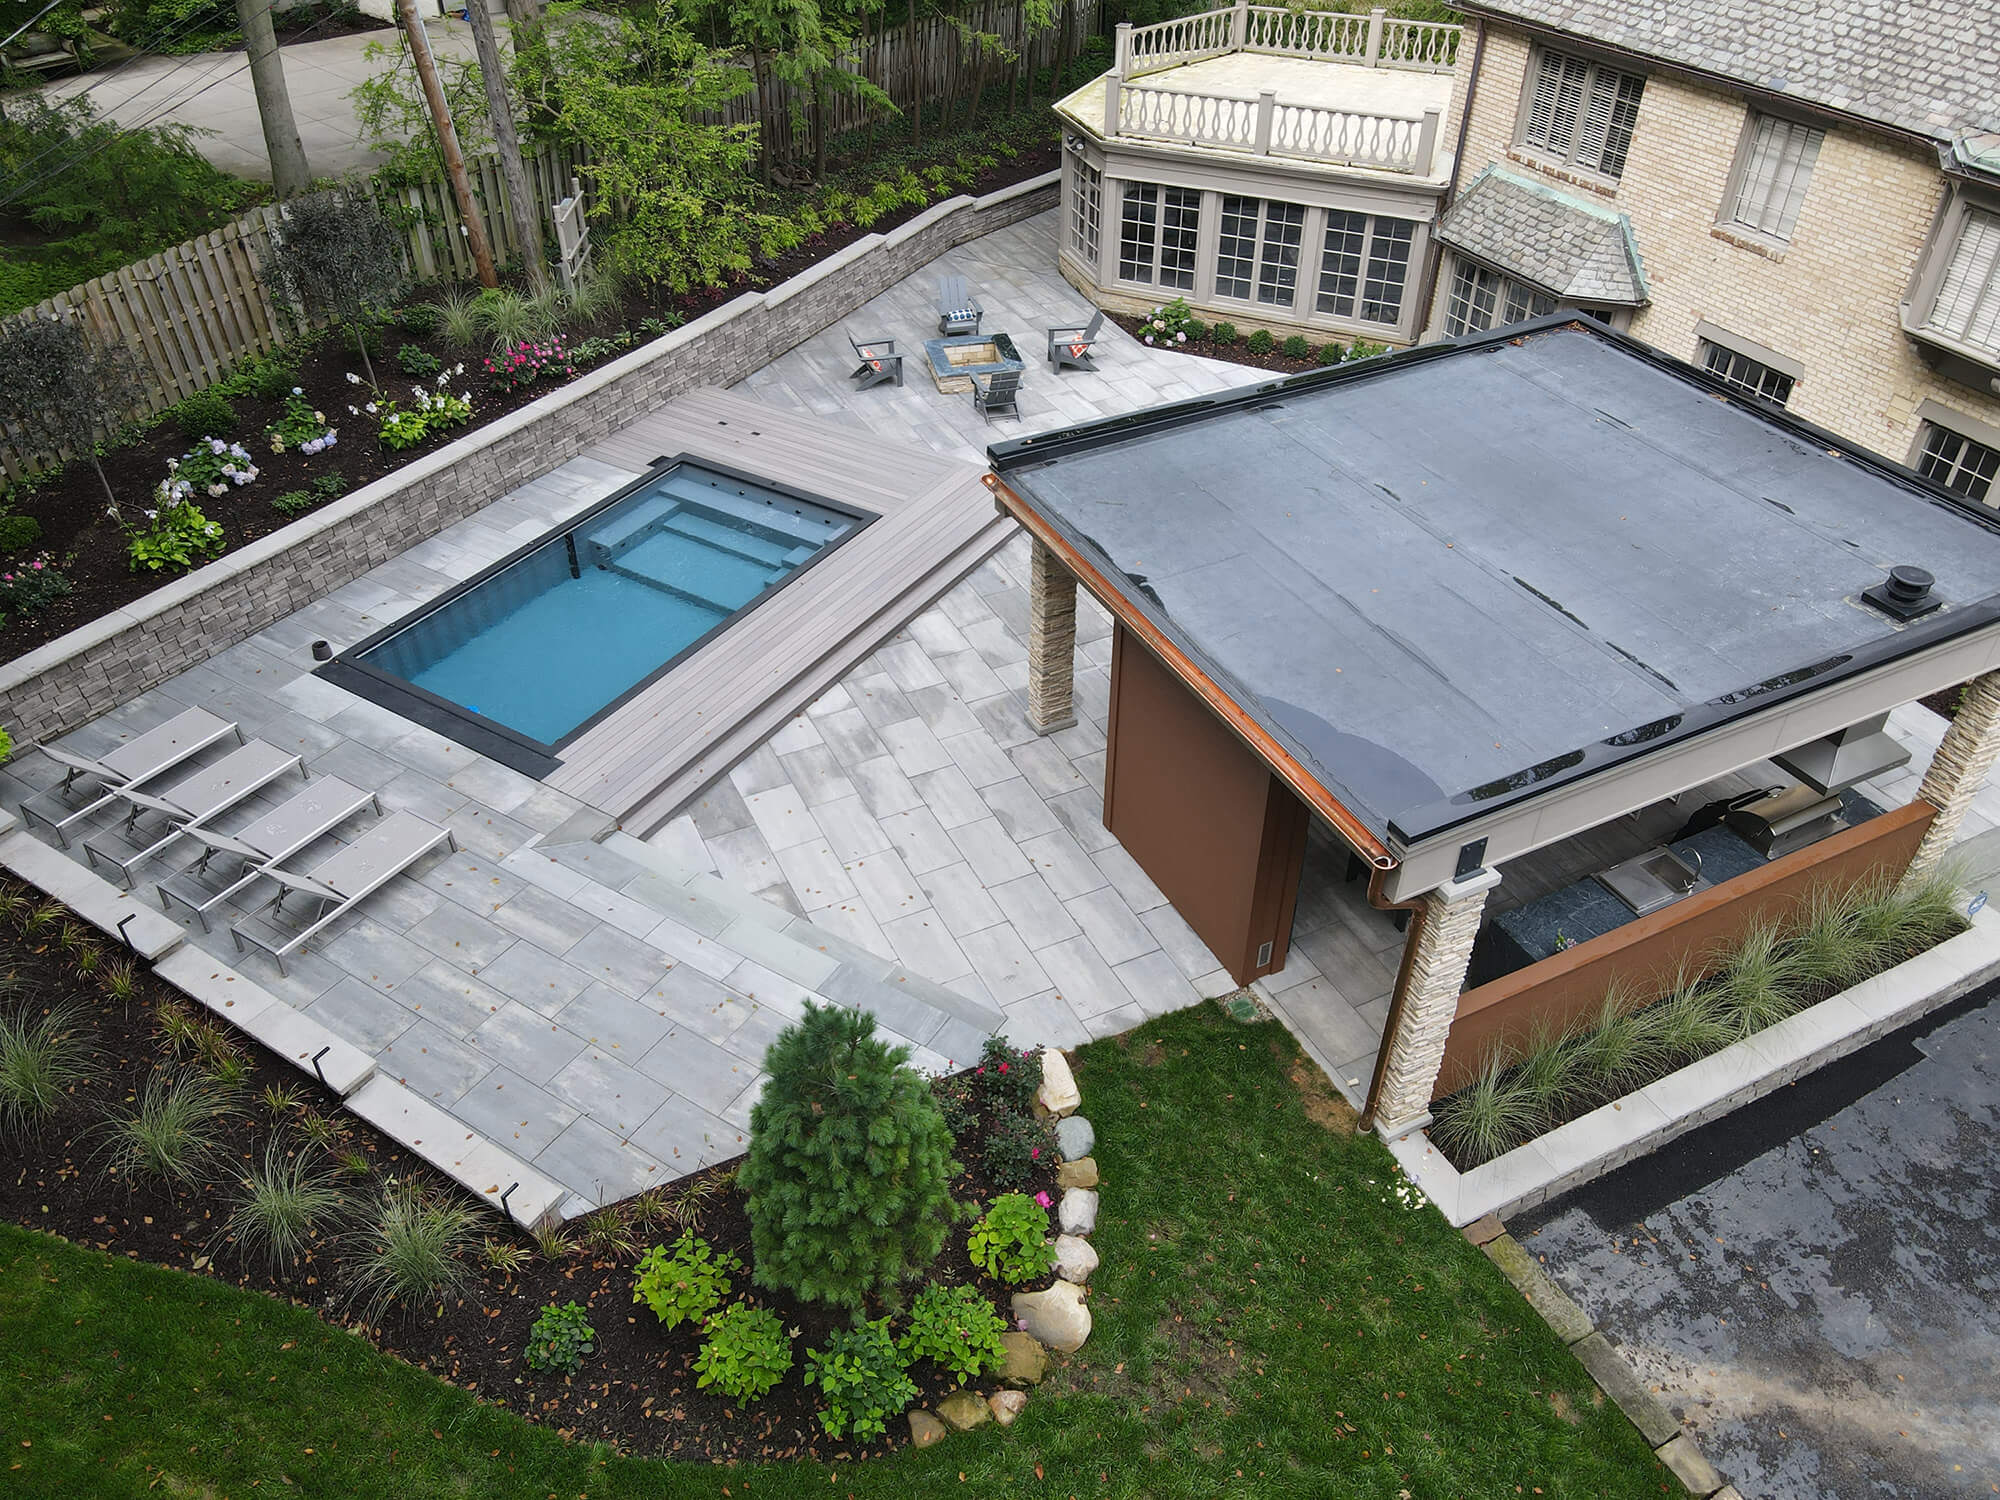 Patio with Pool and Outdoor Entertainment Area